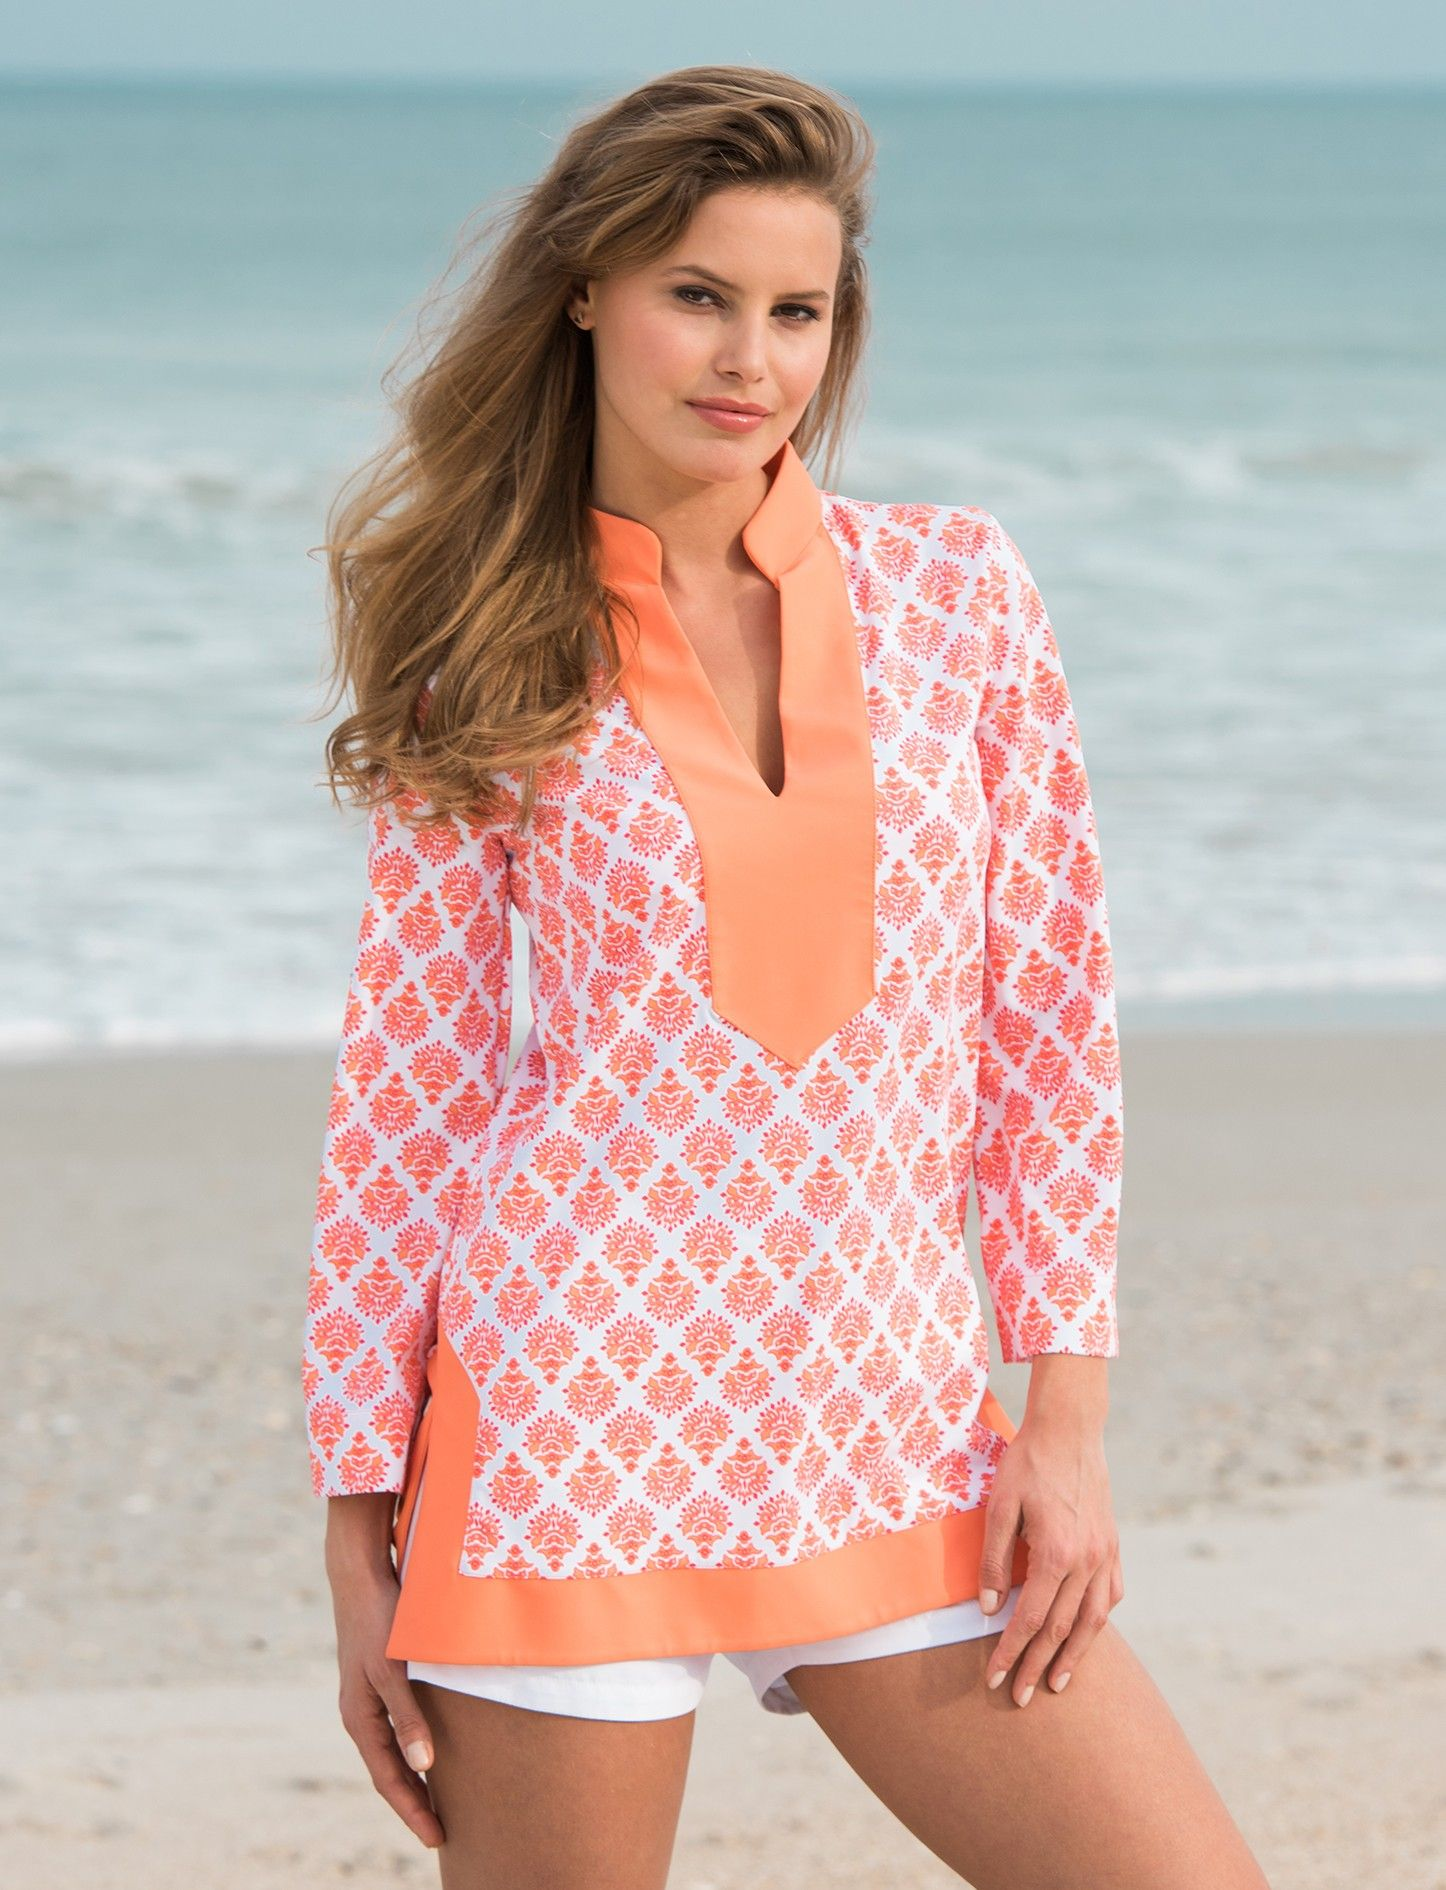 125e348f69 Nantucket Sound Tunic Top, Cabana Life 50+ Uv Protection | Sun ...